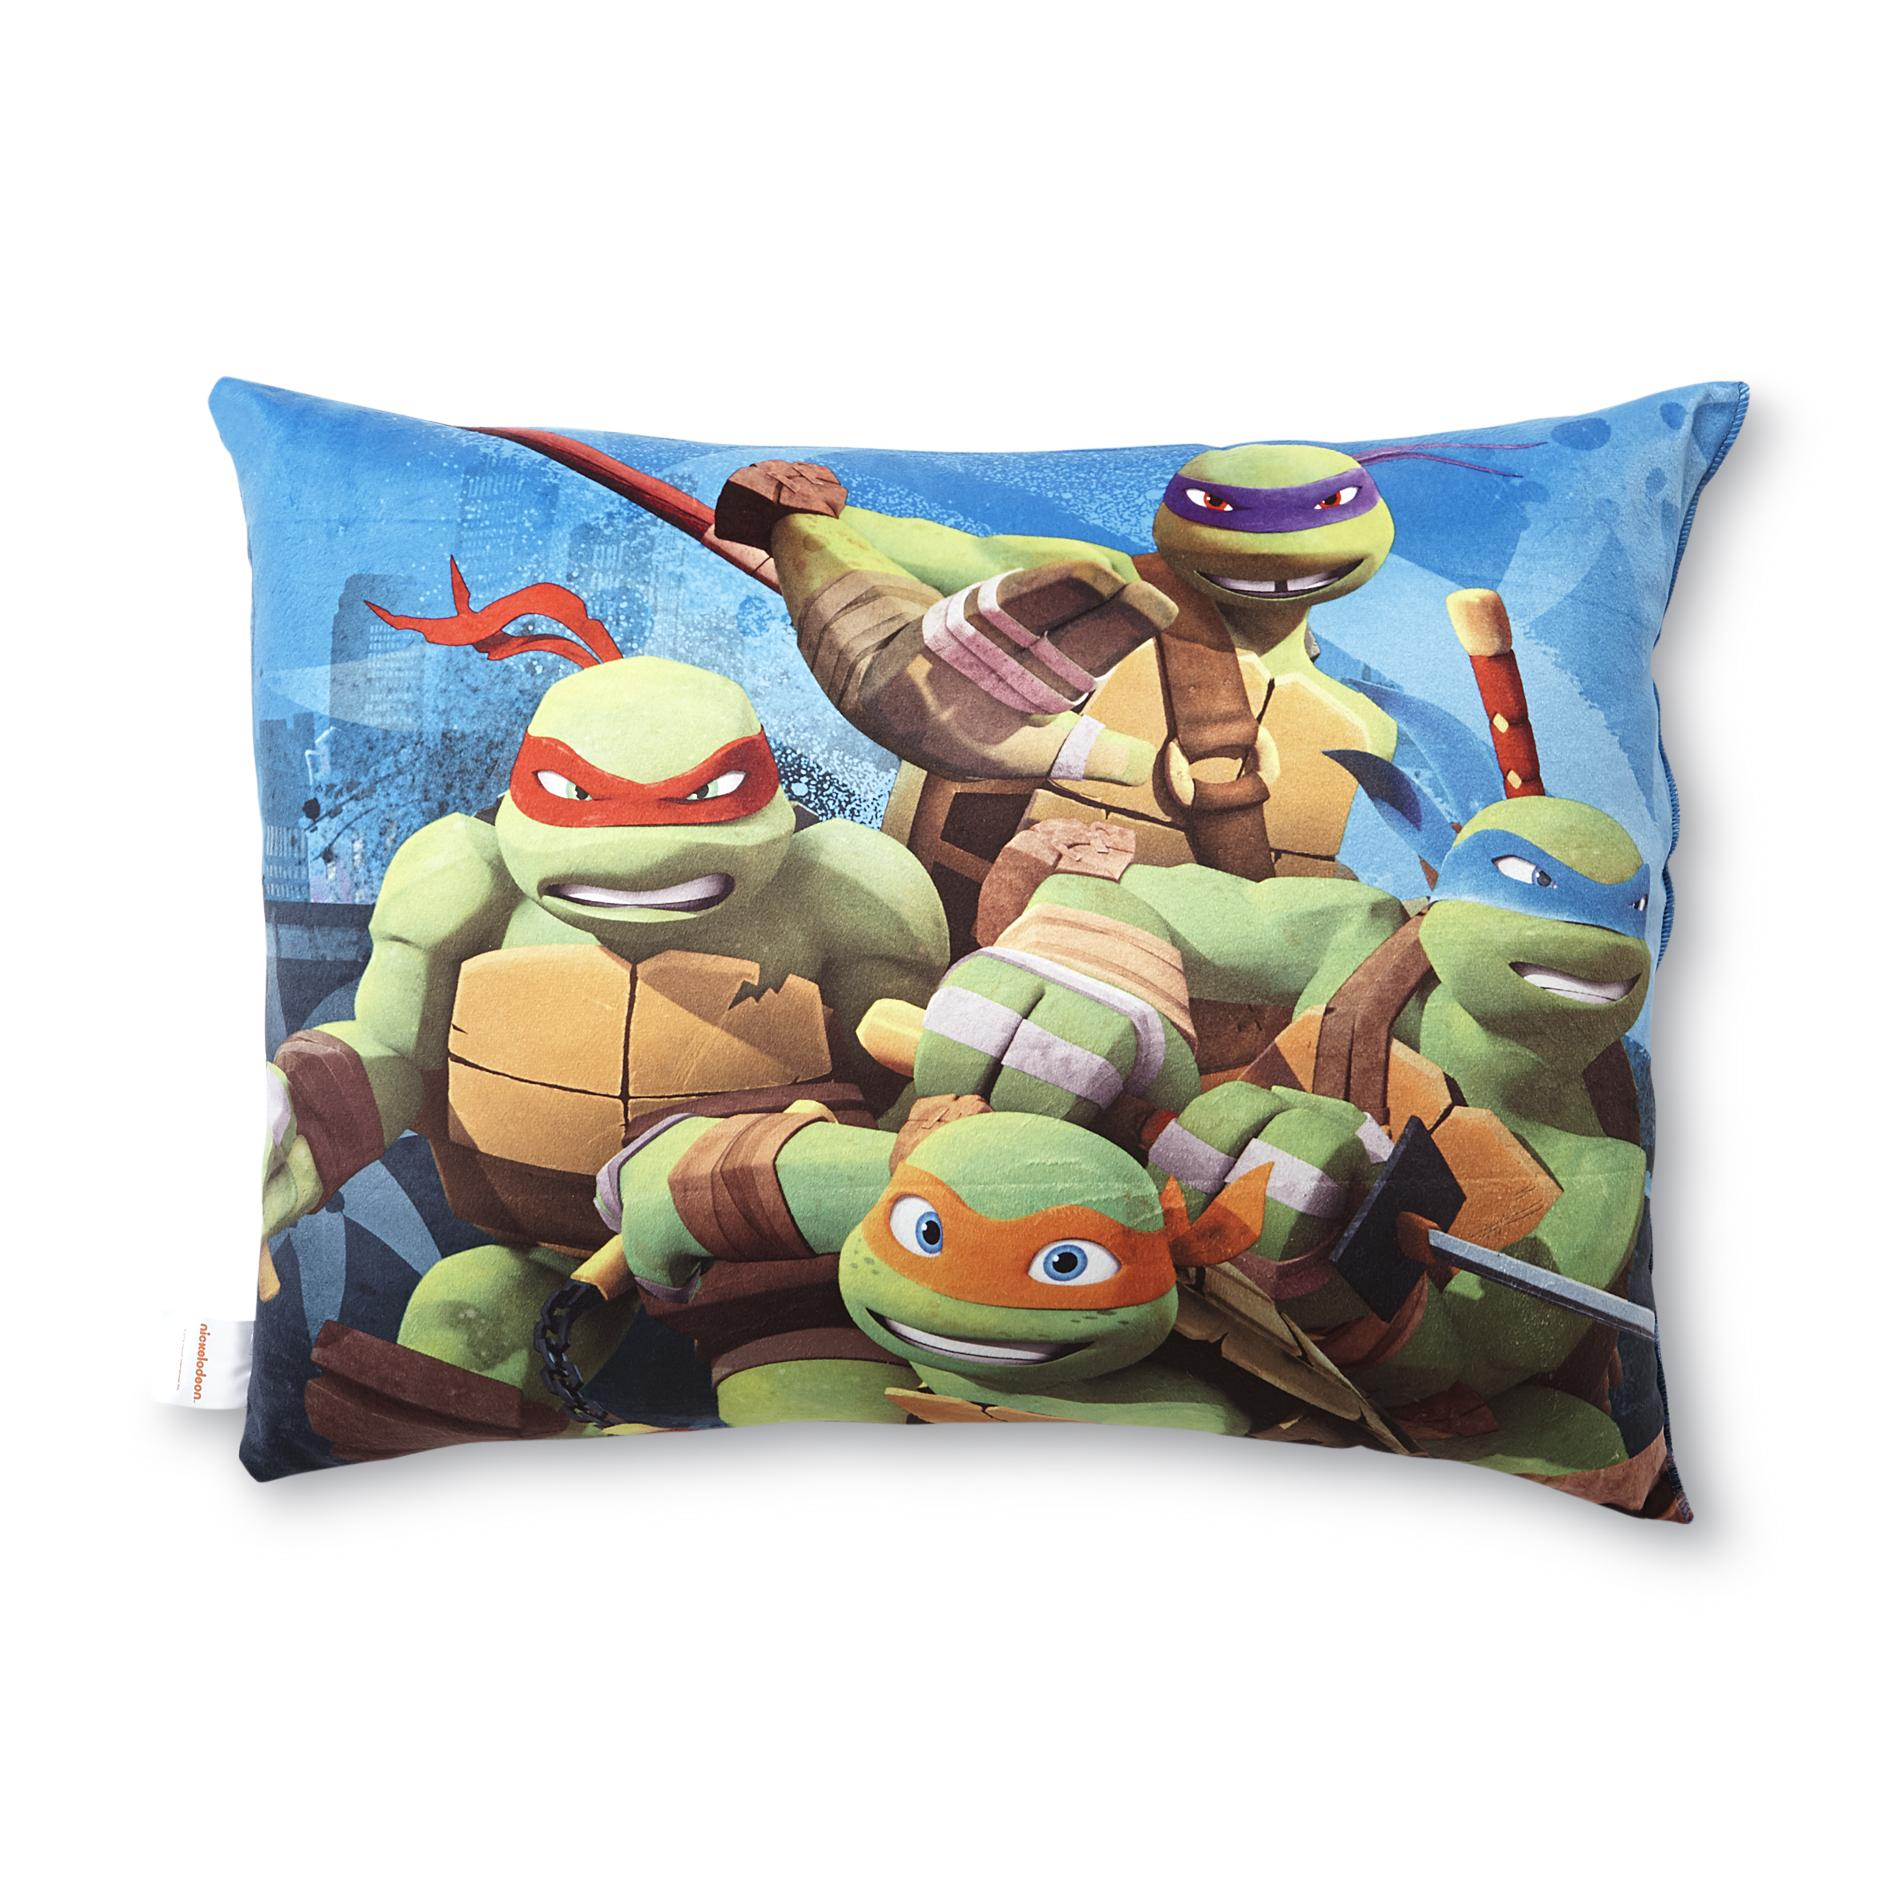 Image of Nickelodeon Bed Pillow - Teenage Mutant Ninja Turtles, Blue